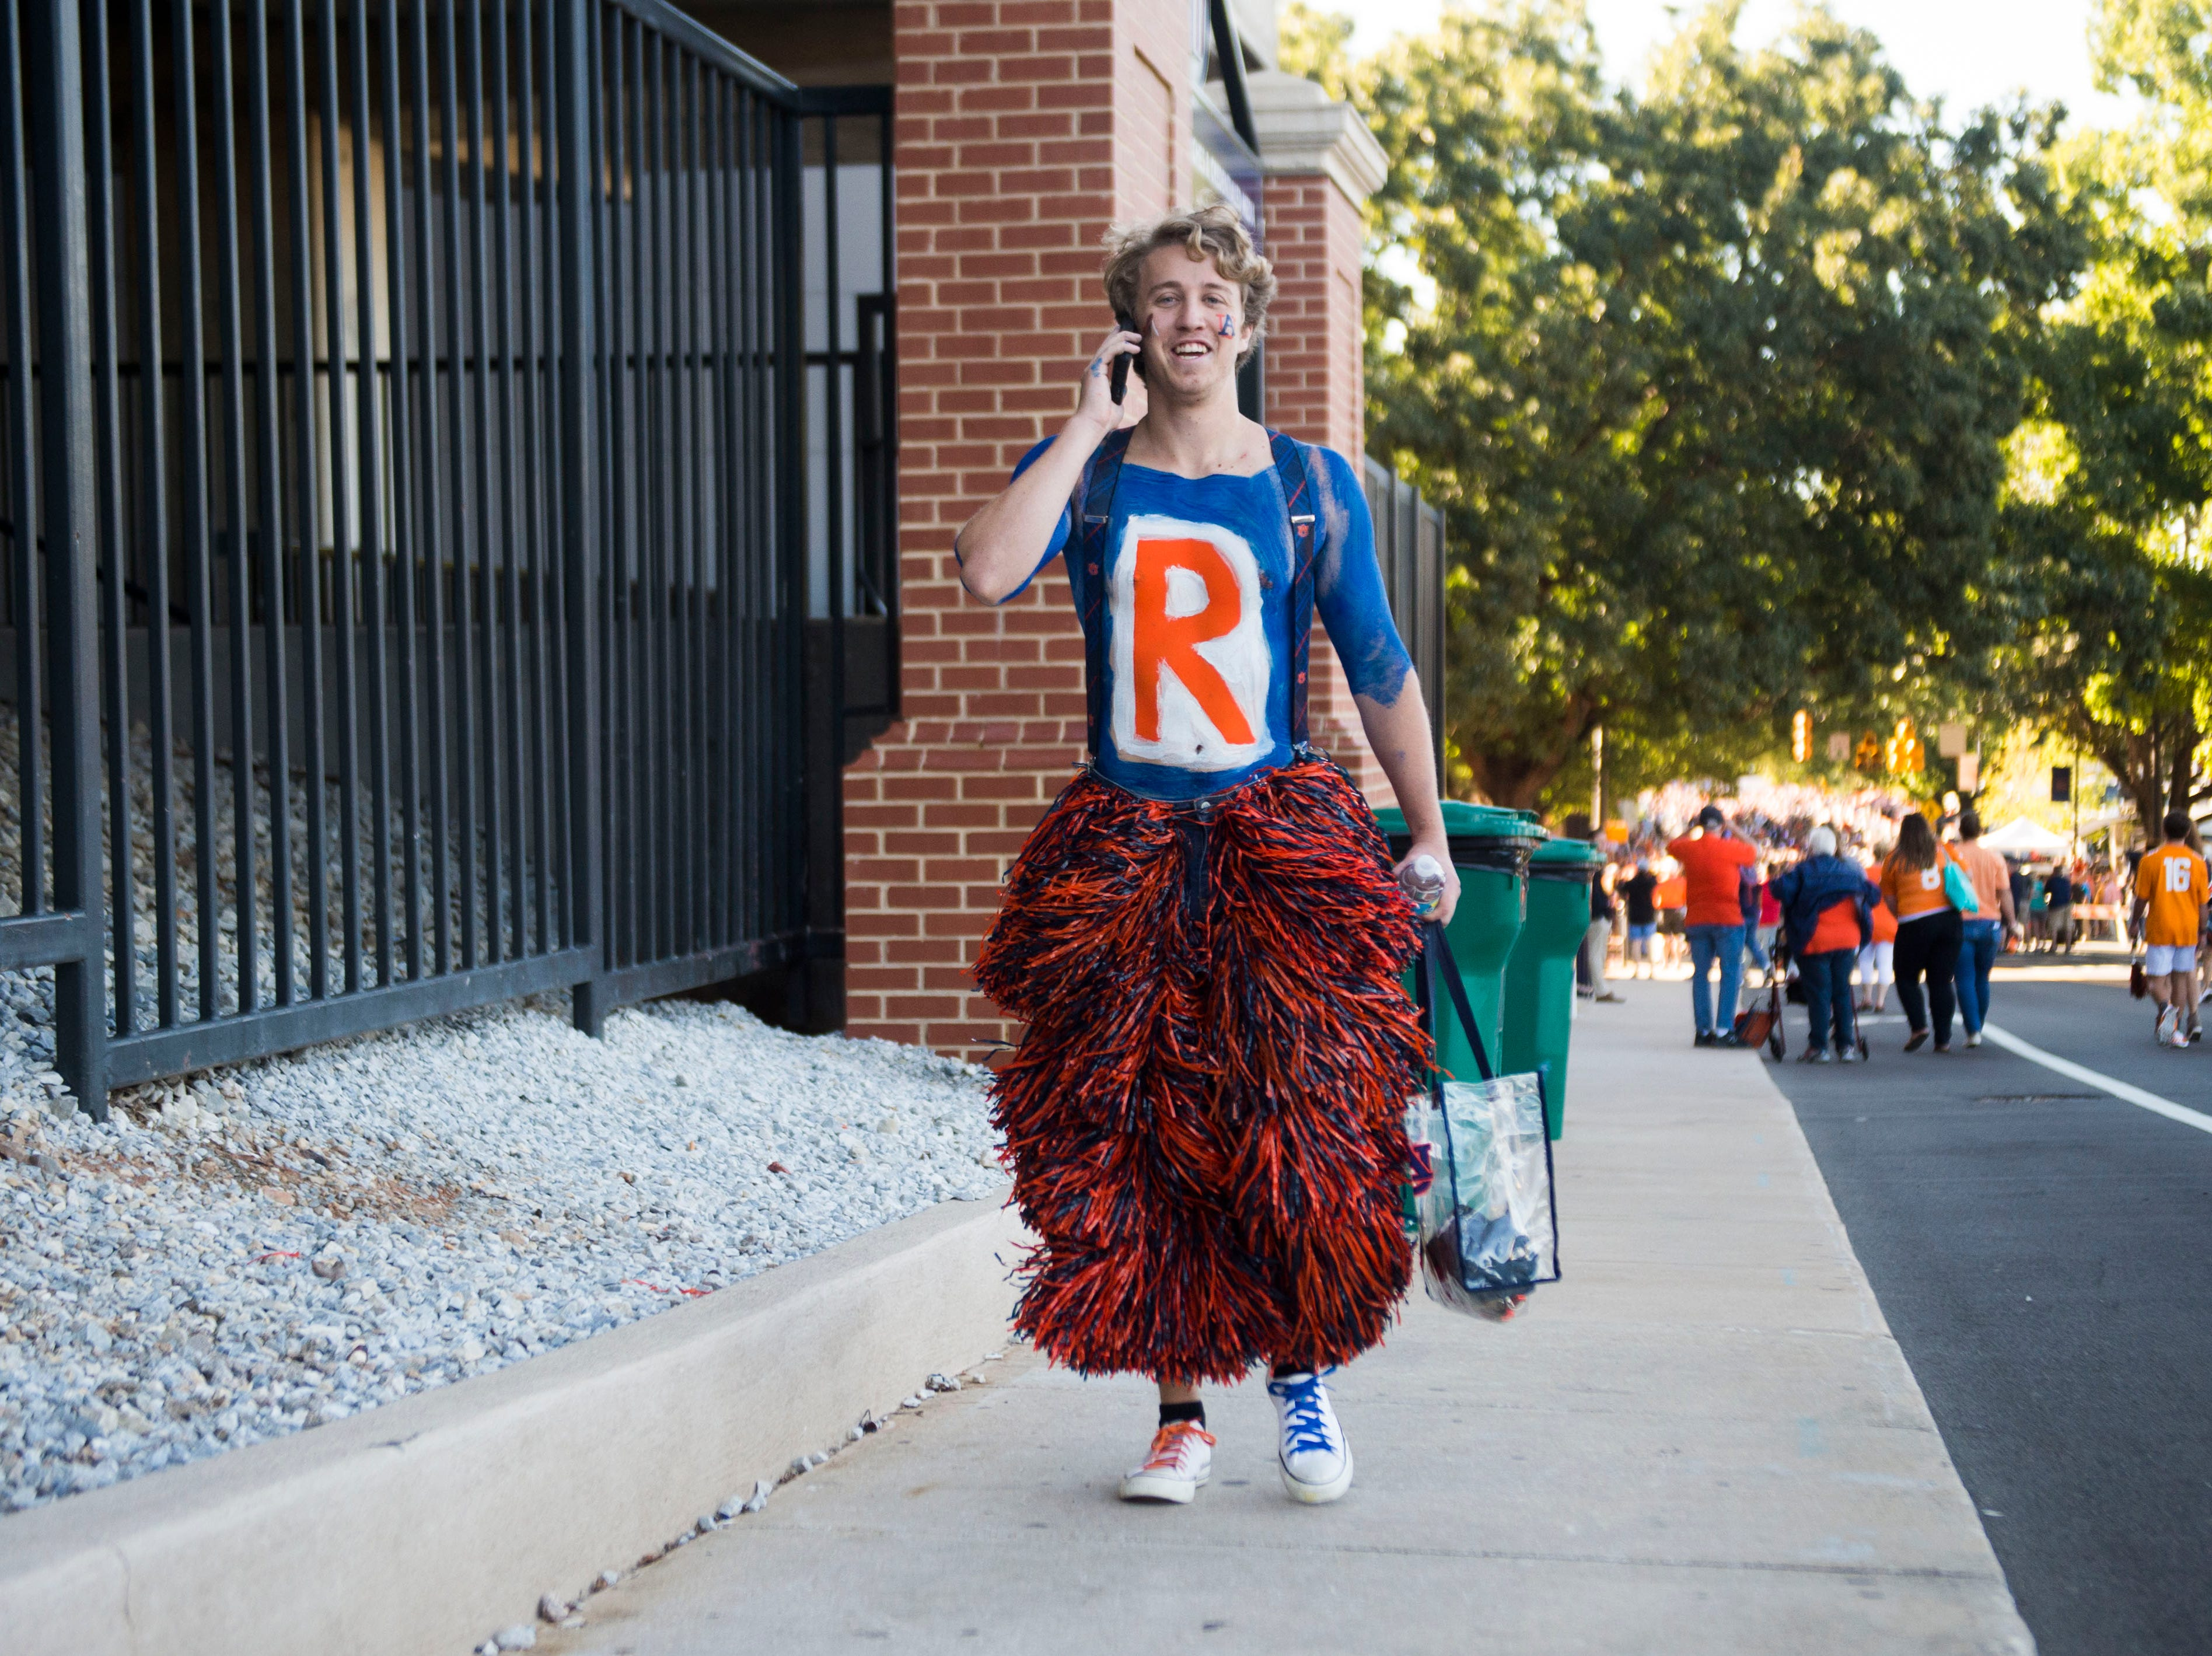 A festive Auburn fan walks outside the stadium before a game between Tennessee and Auburn at Jordan-Hare Stadium in Auburn, Ala. Saturday, Oct. 13, 2018.